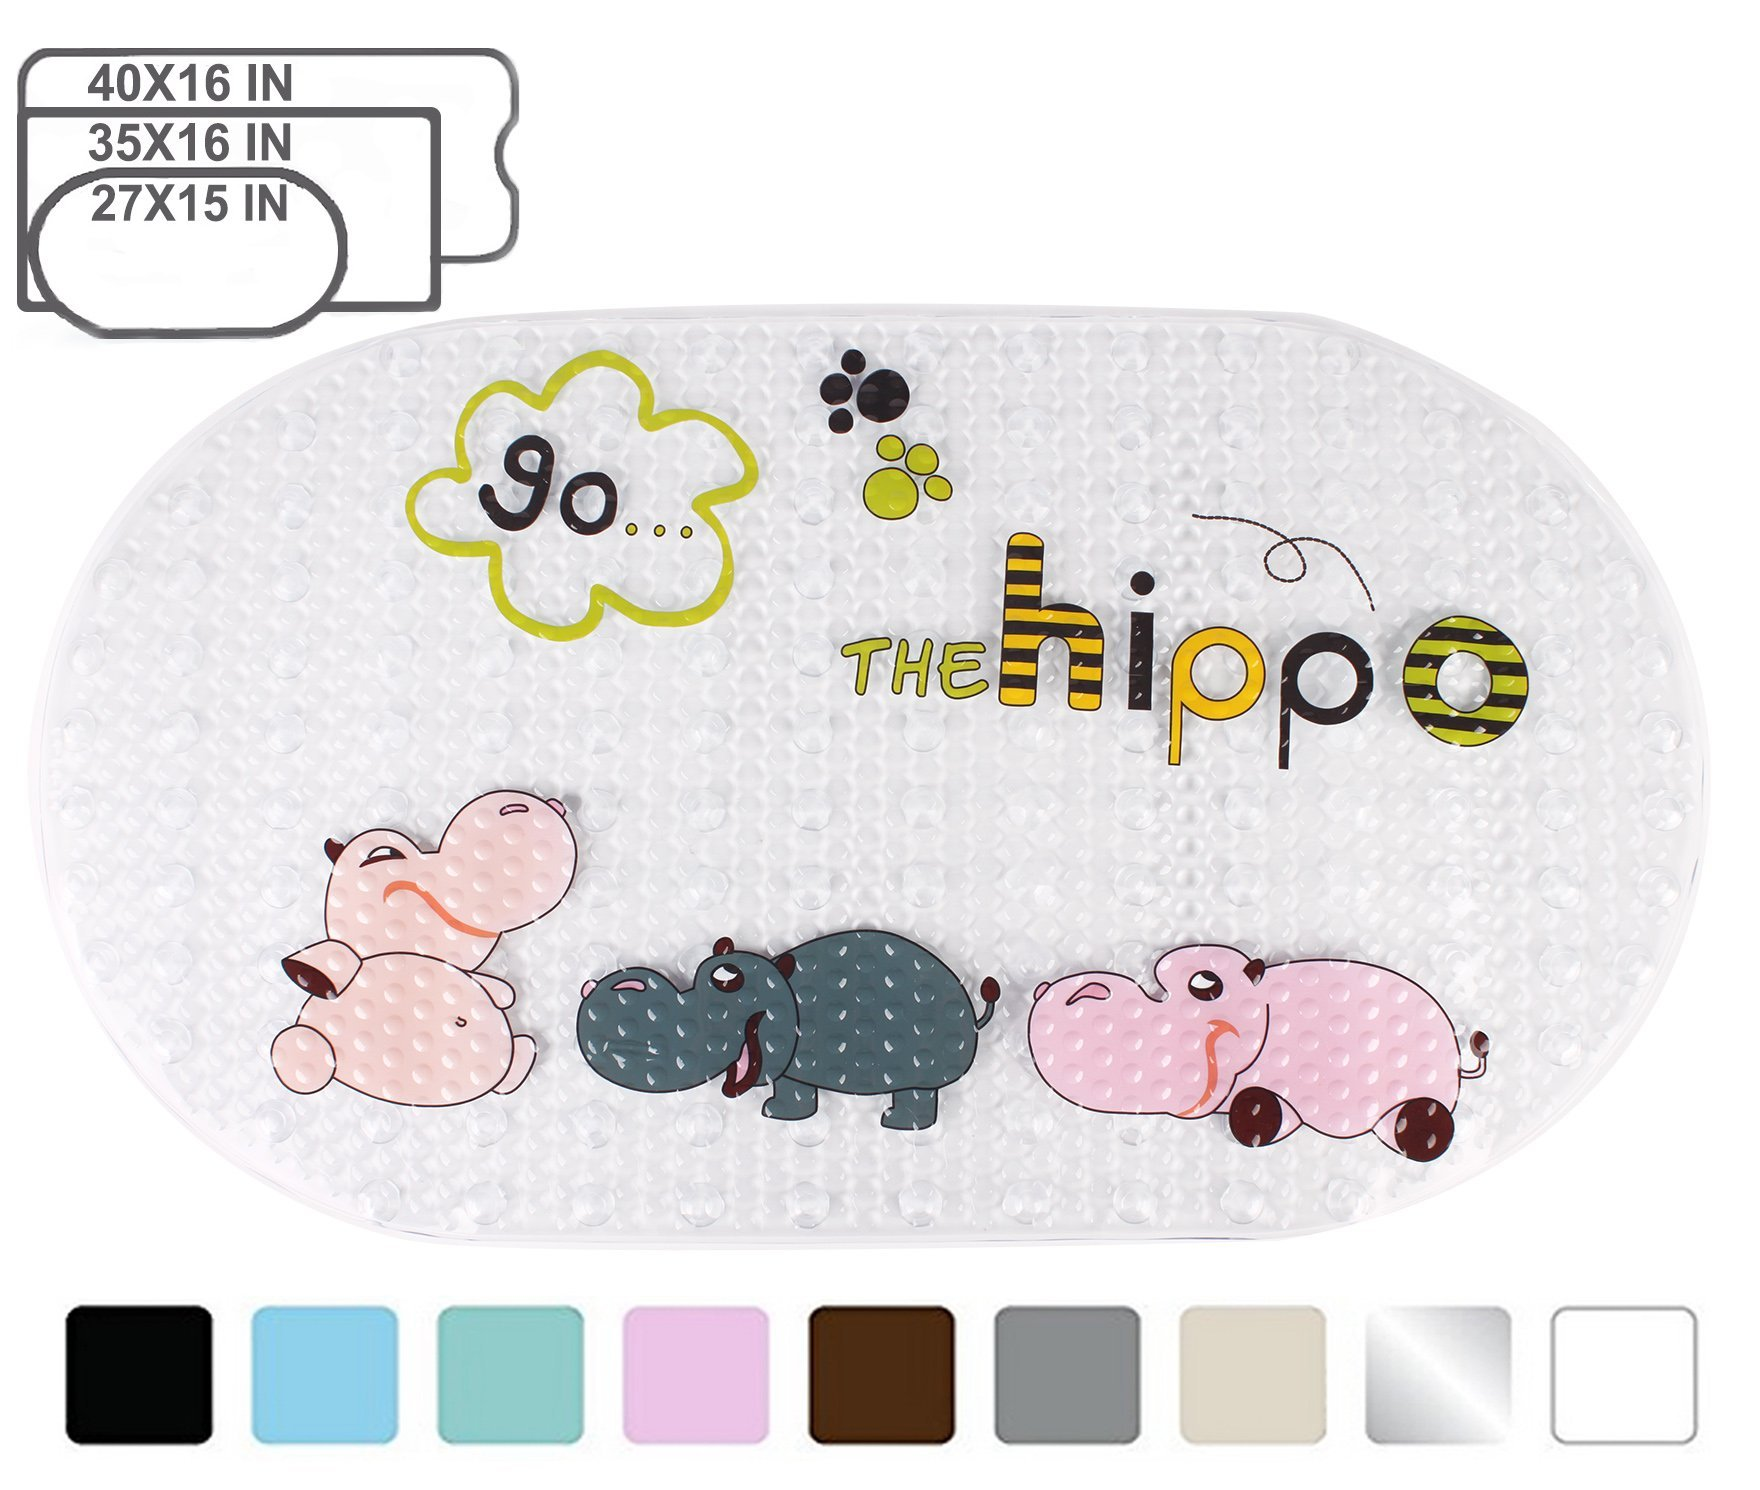 Yimobra Original Bath tub and Shower Mat for Kids Anti Bacterial,Phthalate Free,Latex and Machine Washable Cartoon Pattern Mats Materials,(Baby 27x15 Inch, Hippo)